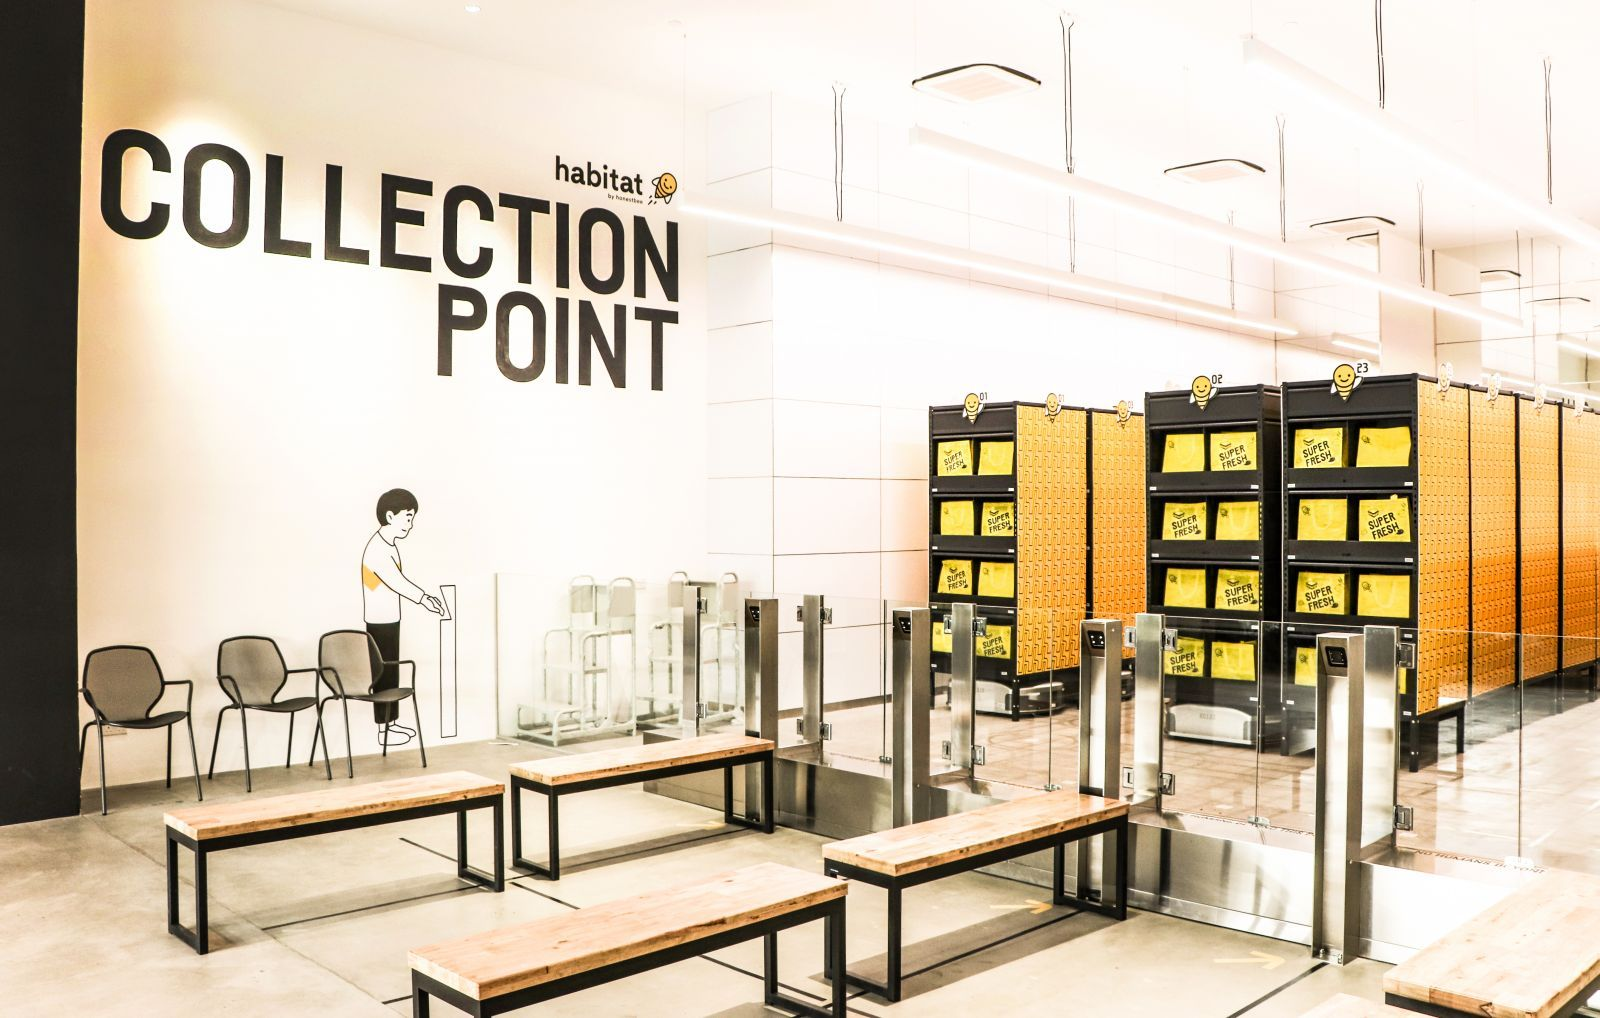 Collection Point at habitat by honestbee.jpg